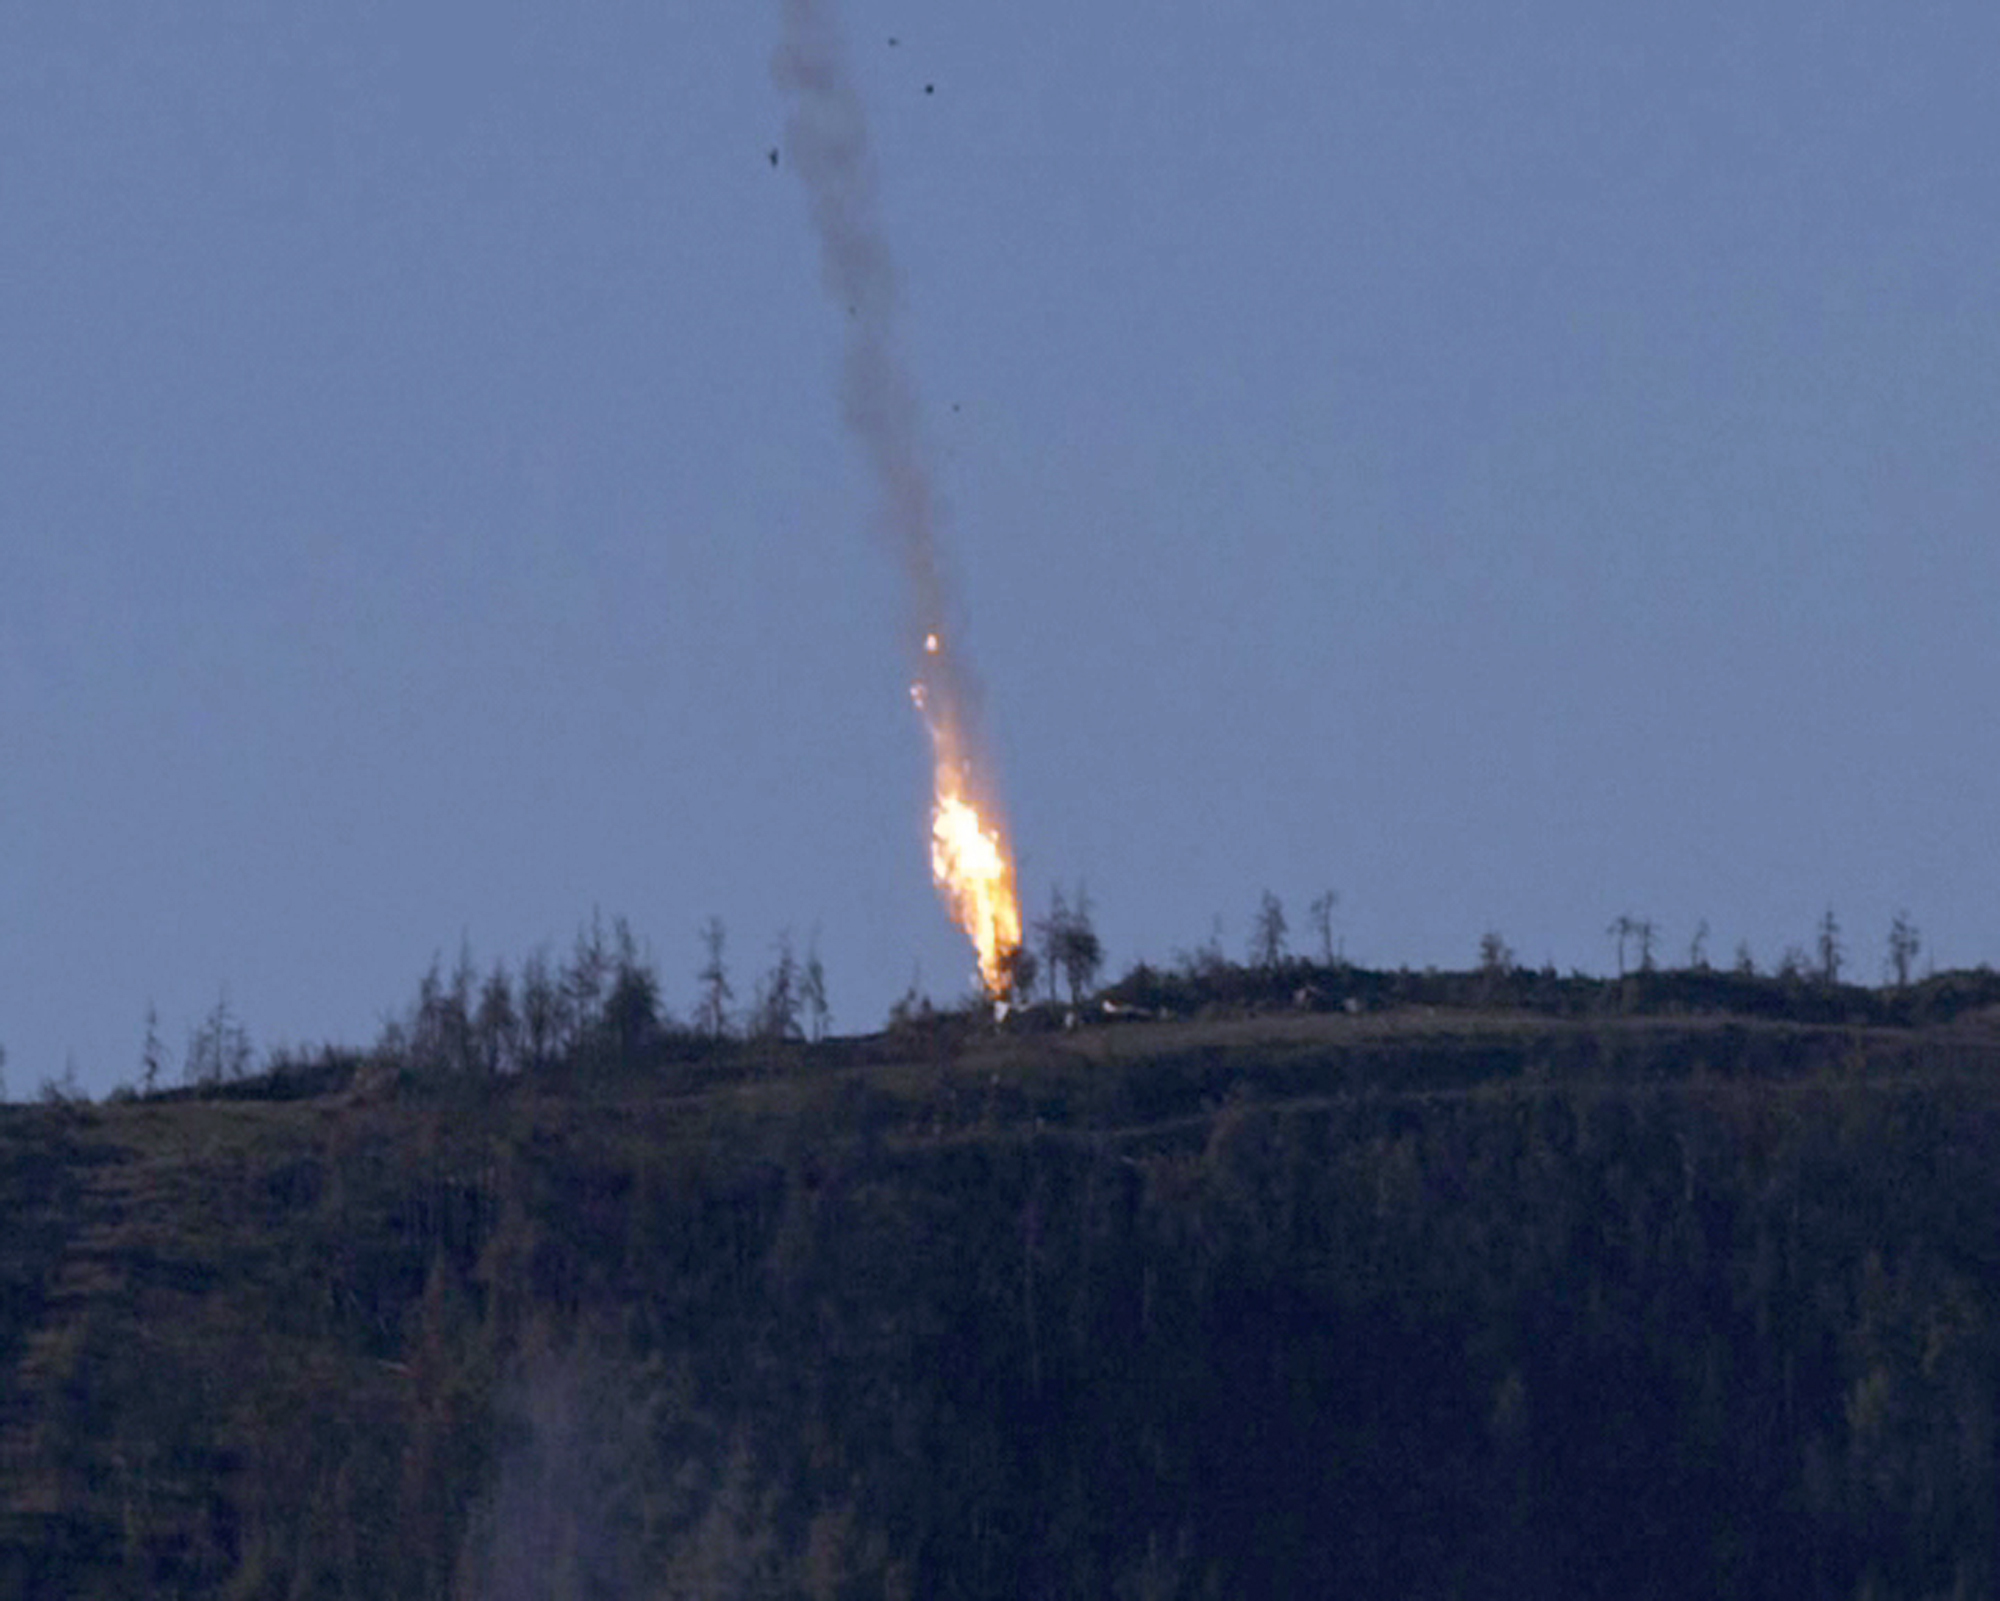 Blue Fighter Jets A Russian Fighter Jet Has Been Downed Over